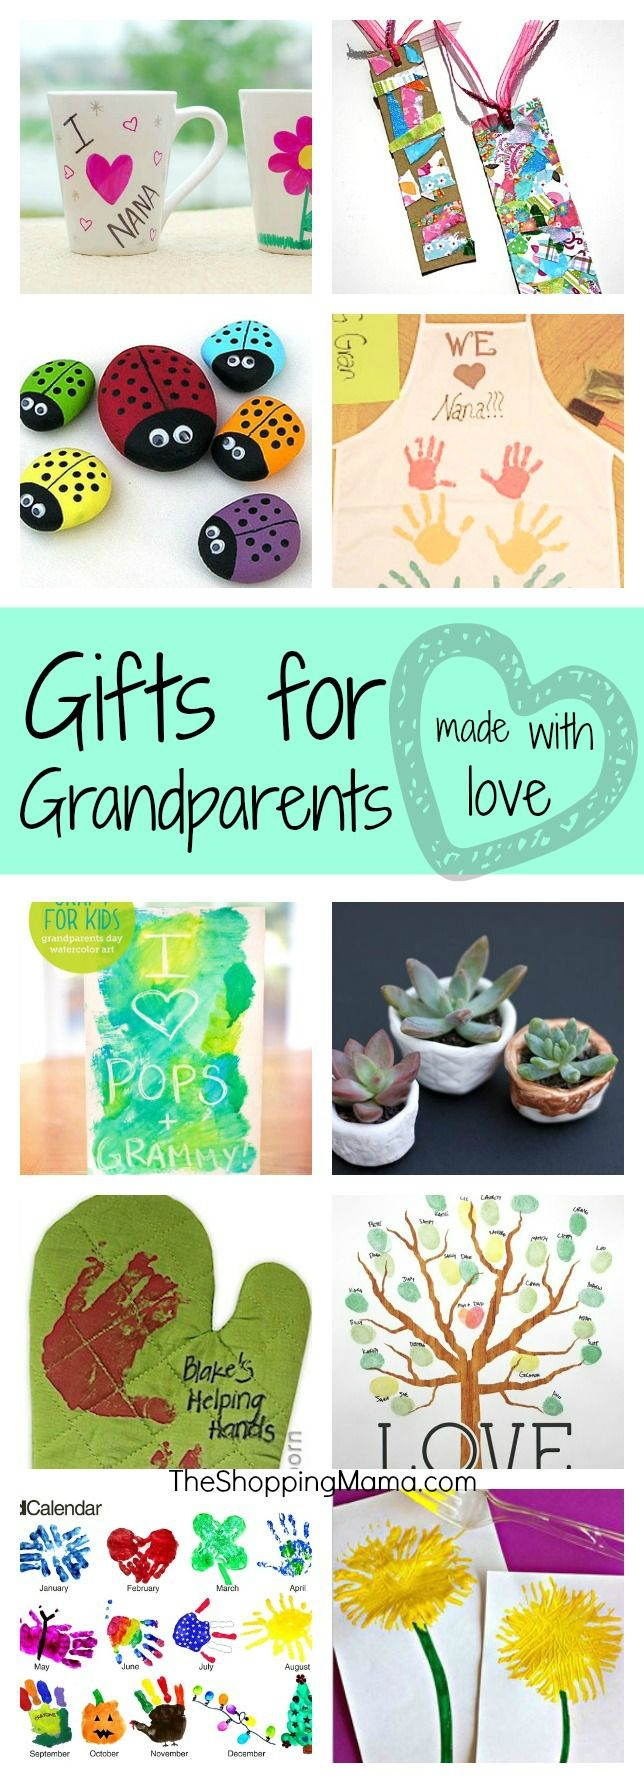 25+ unique Grandparents day gifts ideas on Pinterest | Crafts for ...